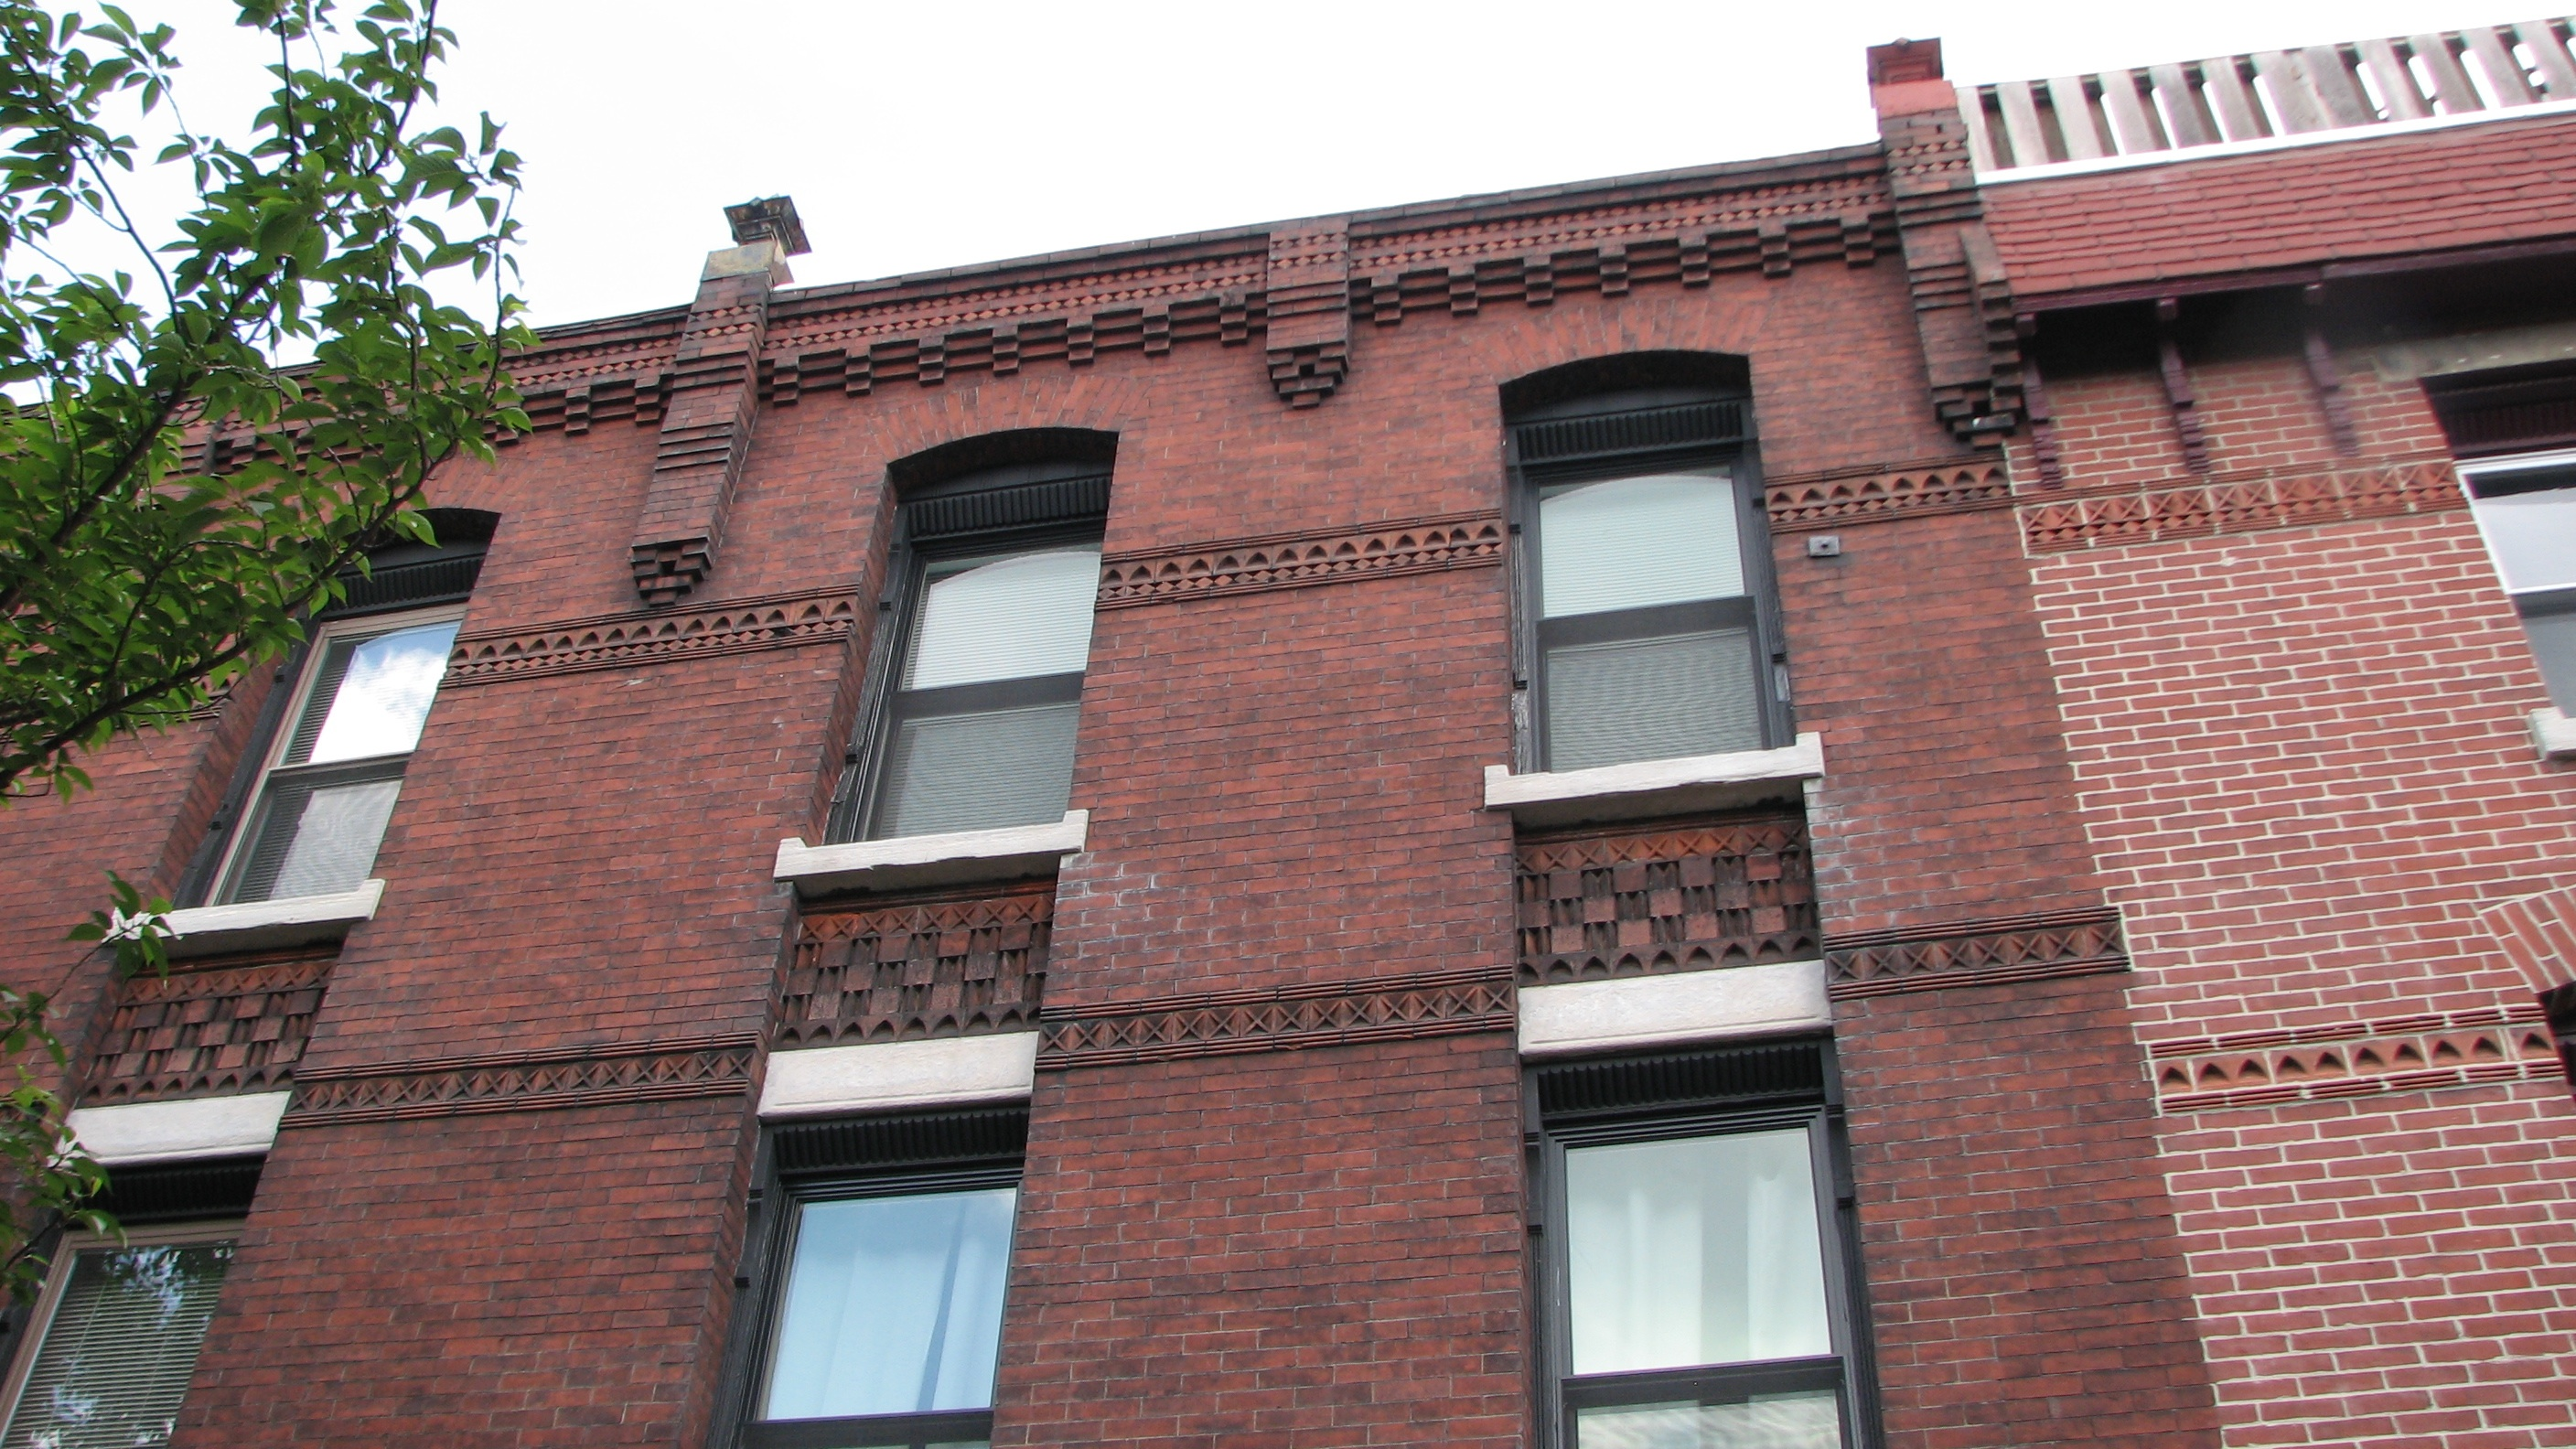 Distinctive brickwork adorns homes on North 21st Street.